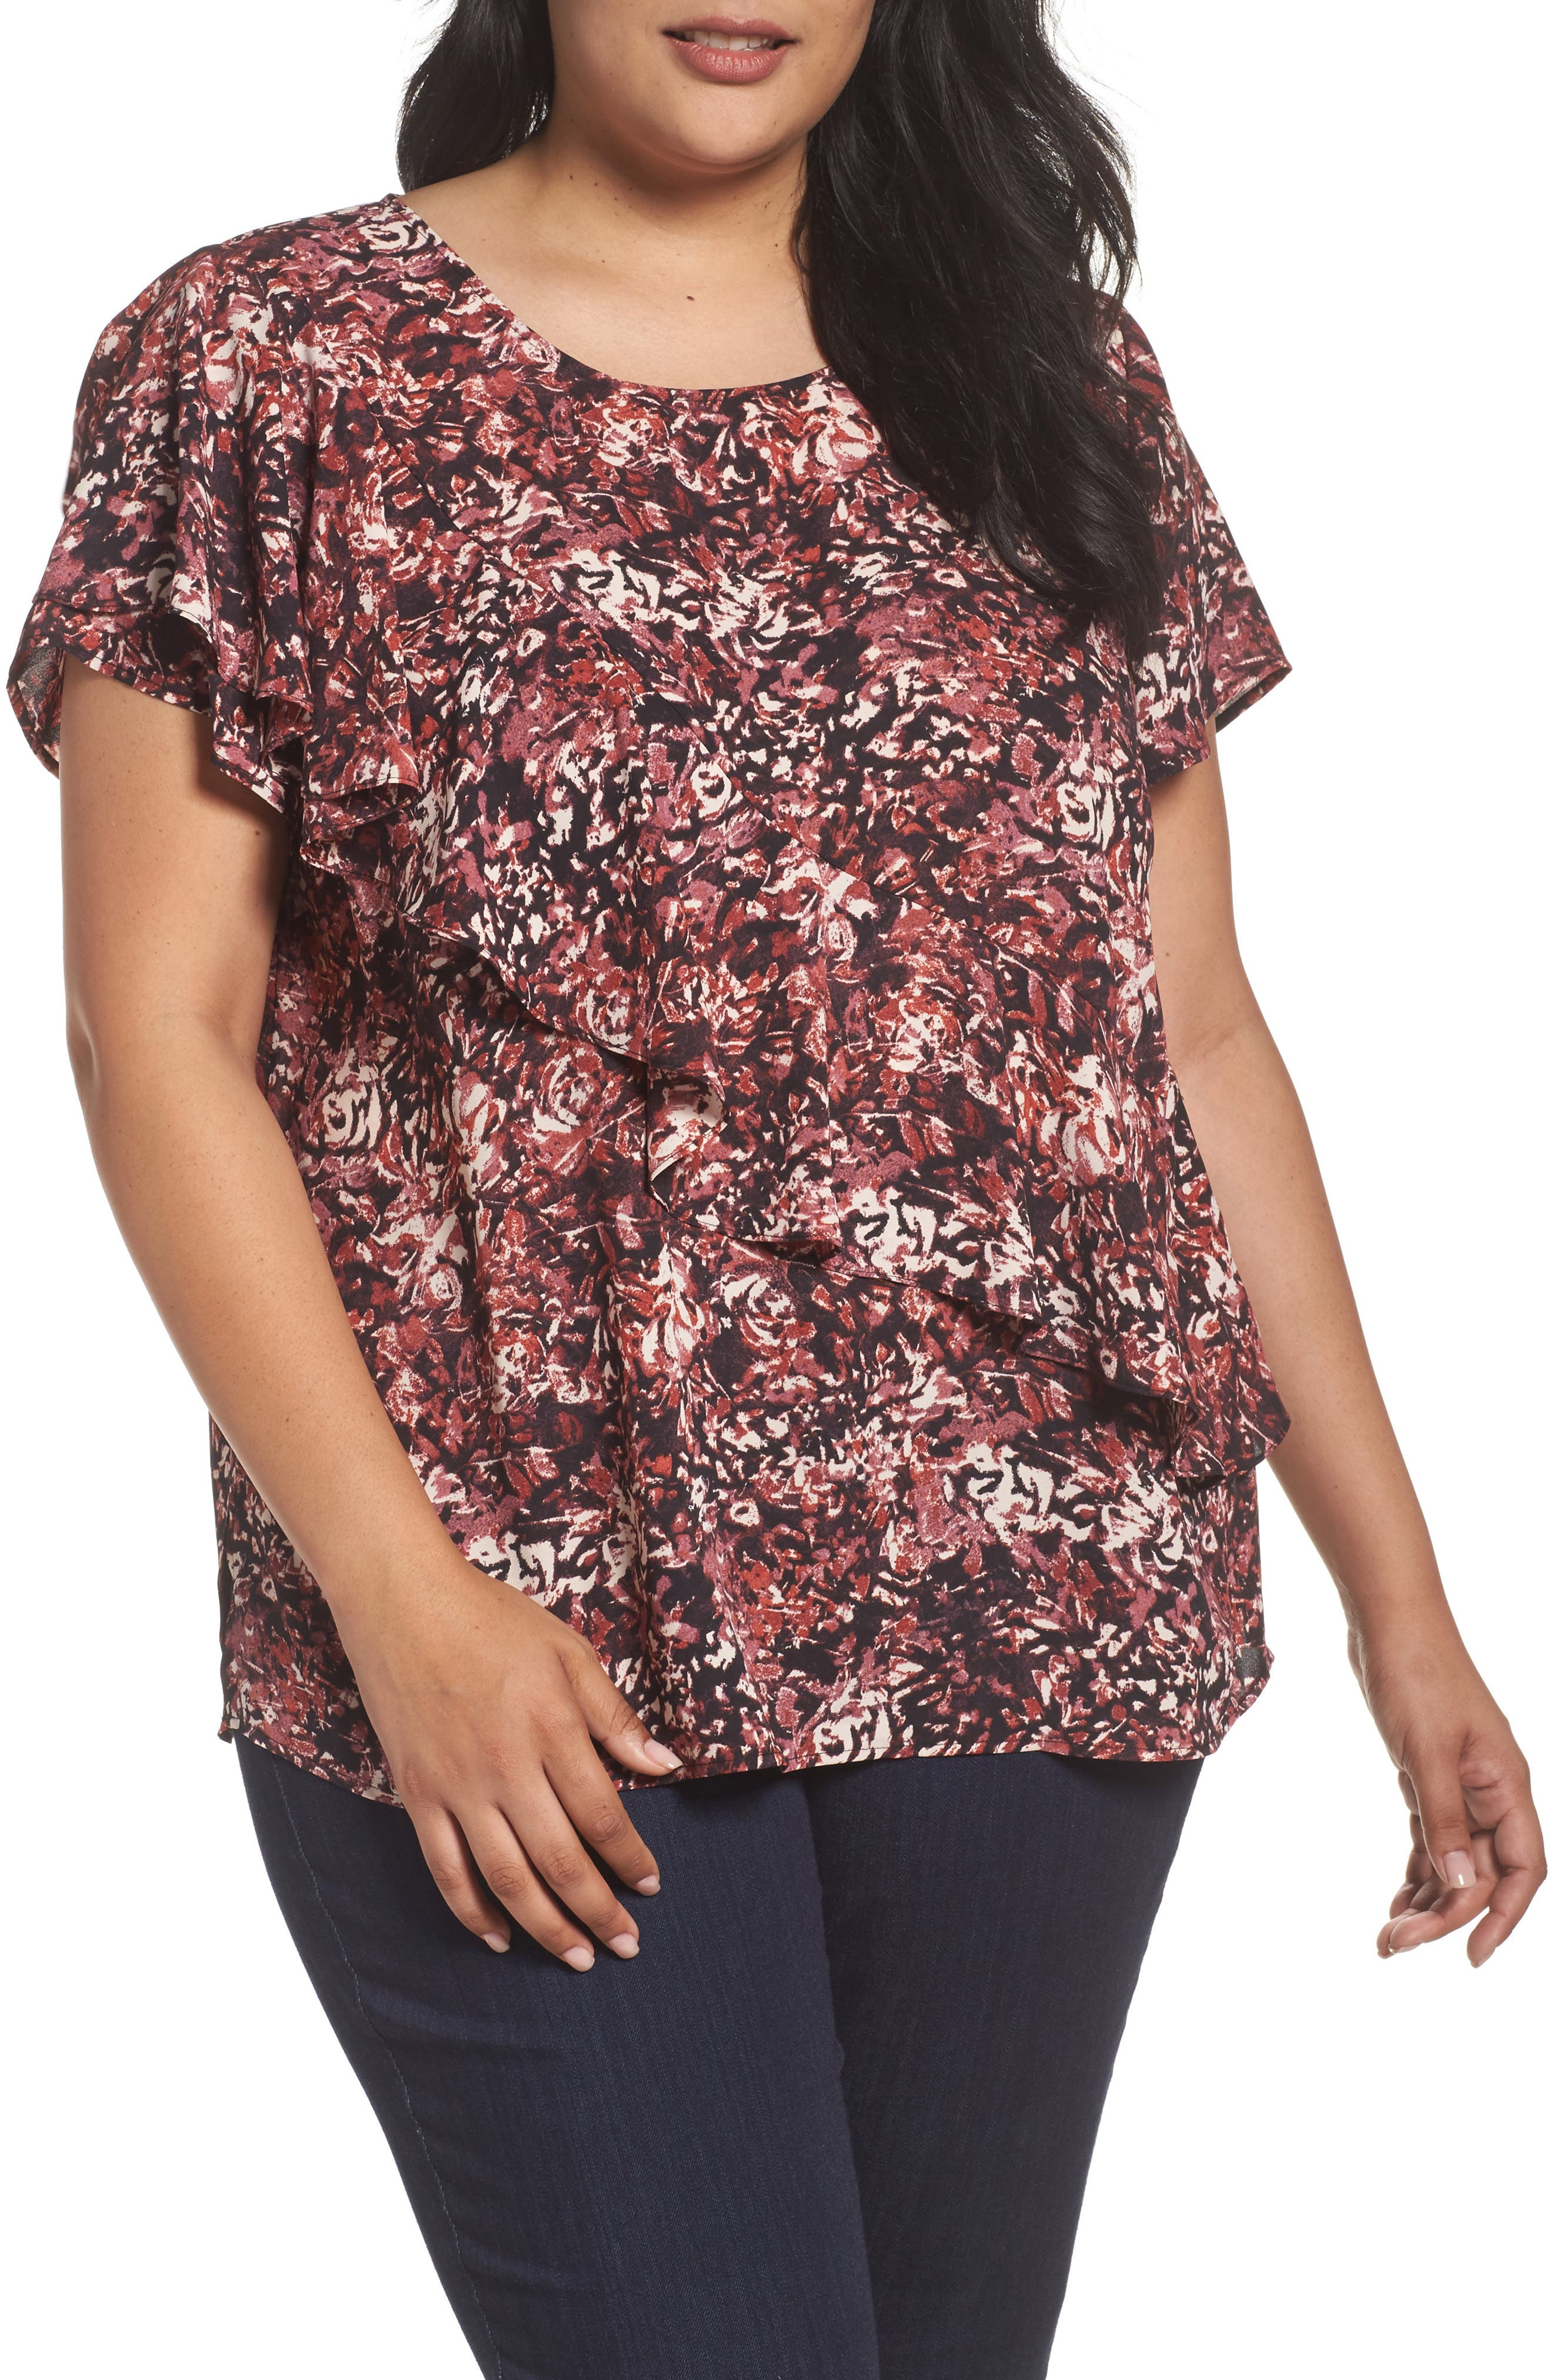 Alternate Image 1 Selected - Sejour Woven Ruffle Tee (Plus Size)